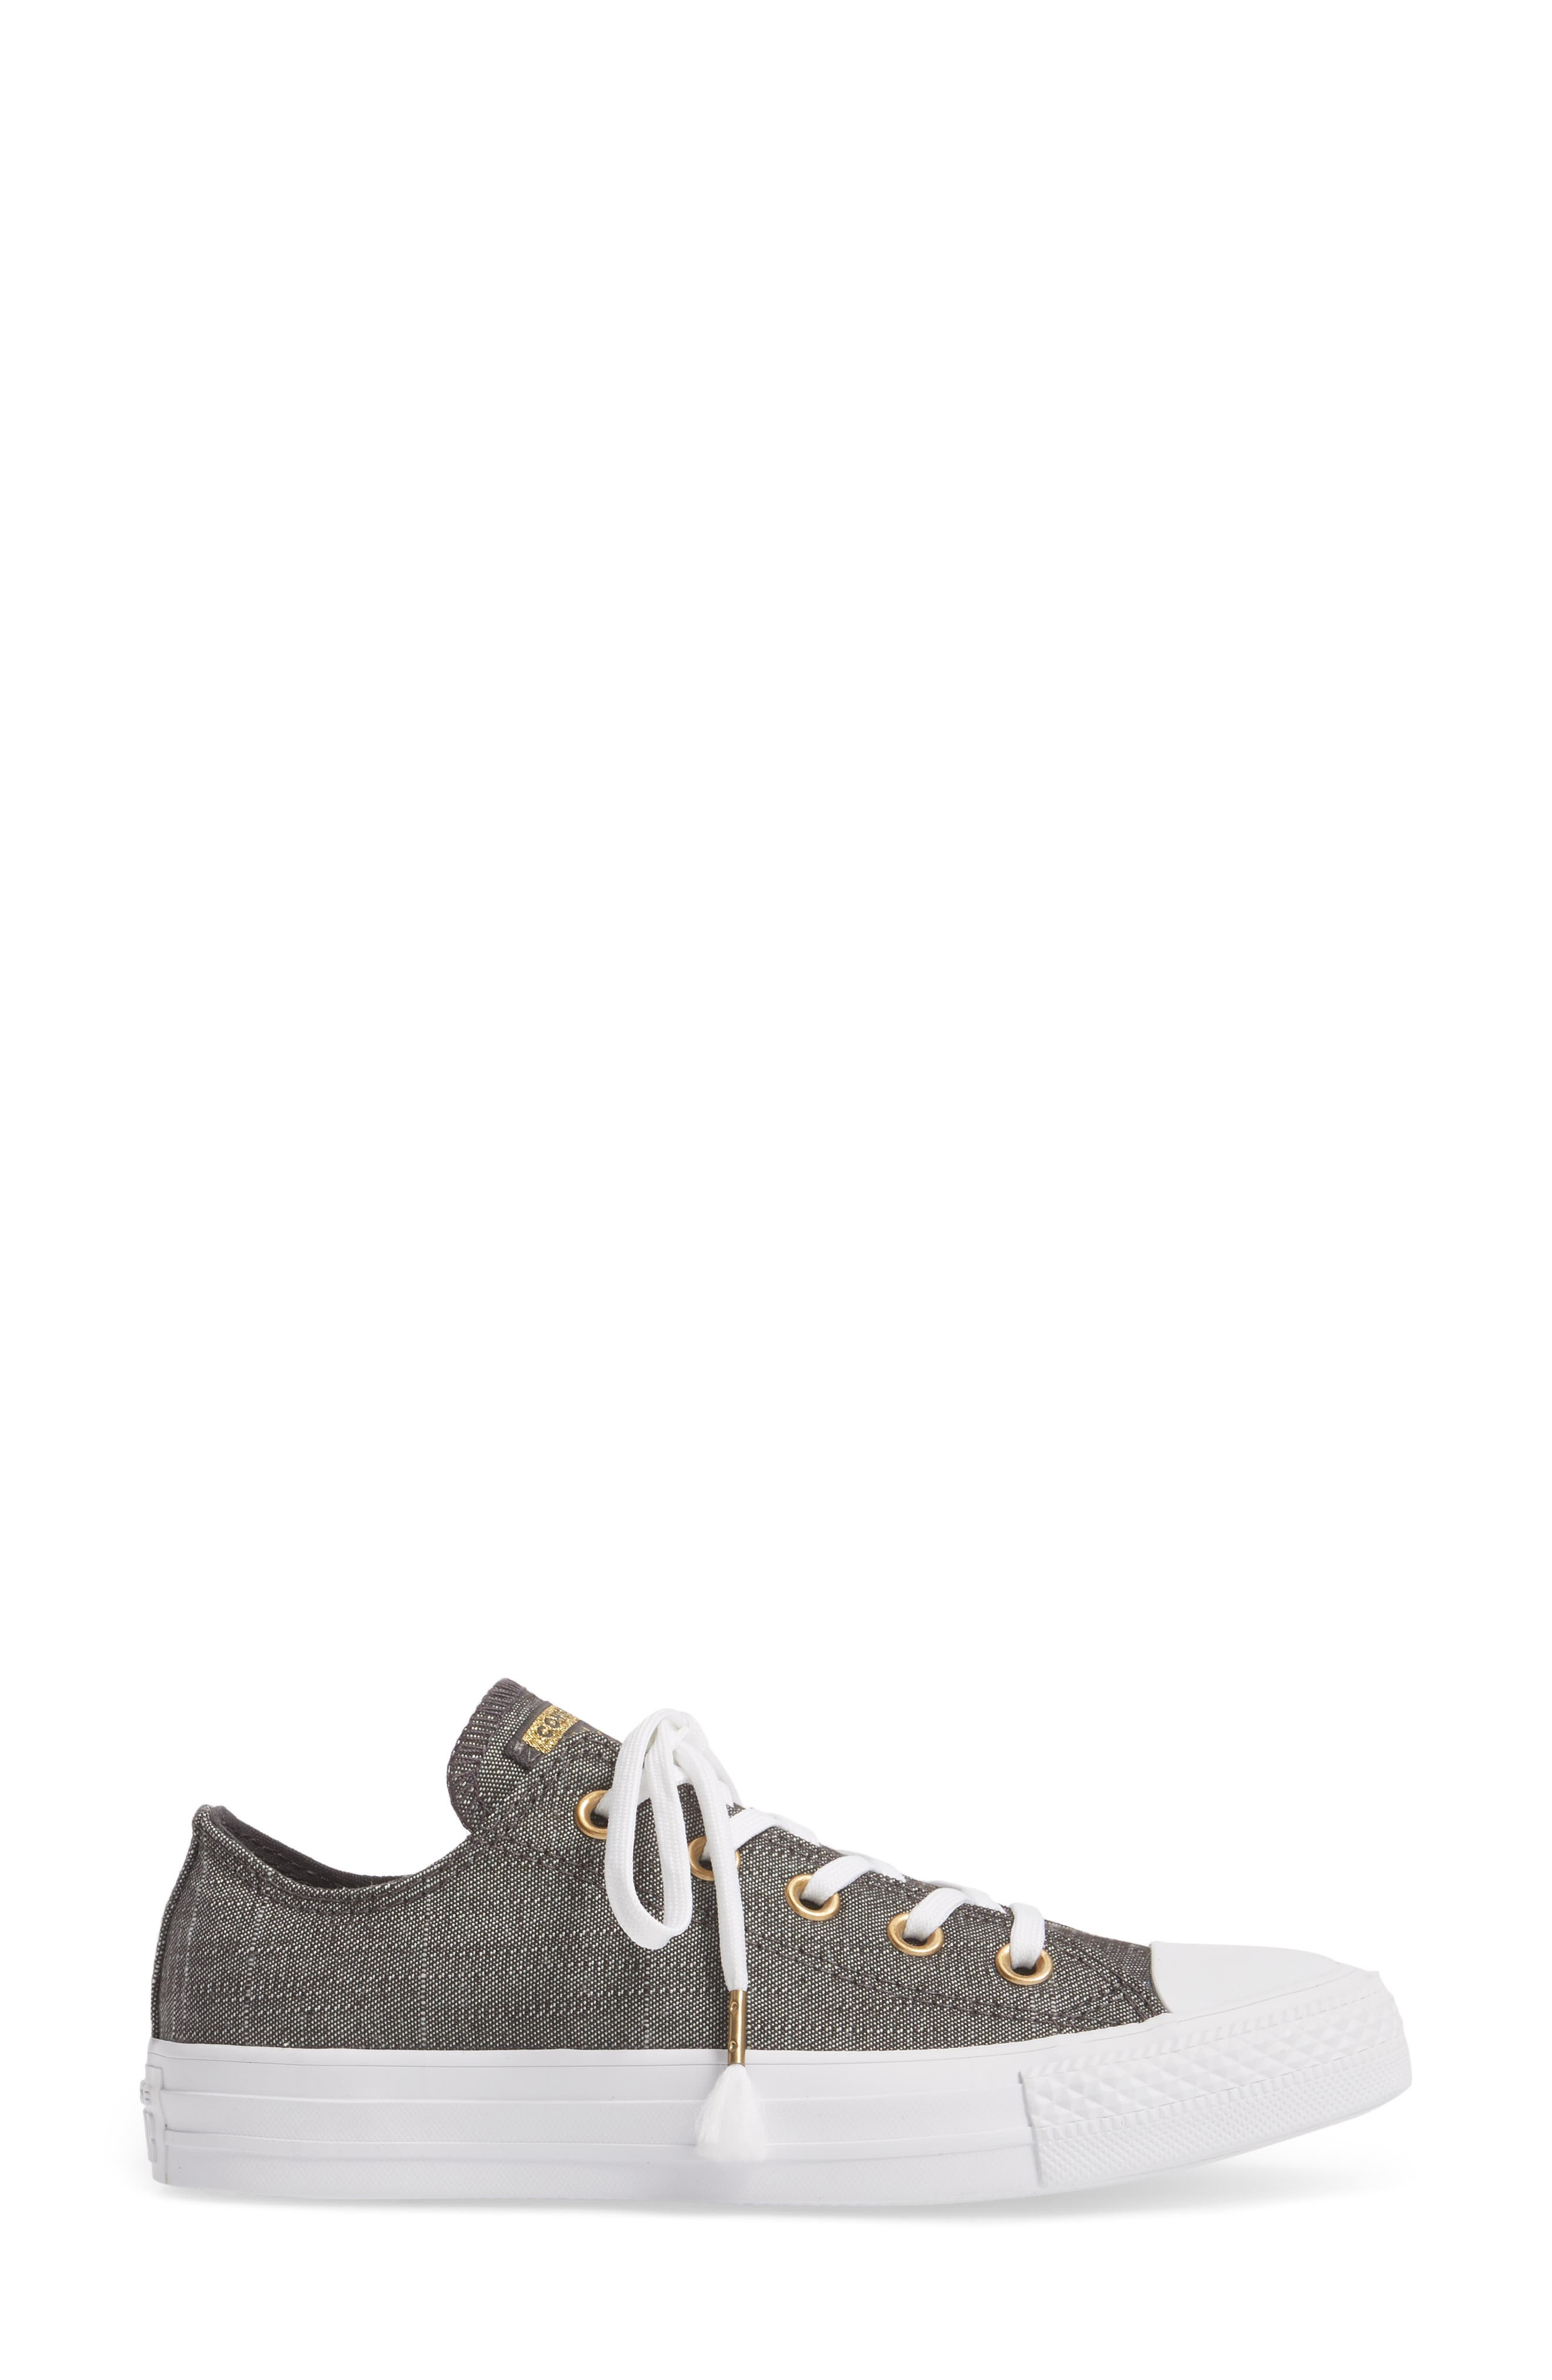 Chuck Taylor<sup>®</sup> All Star<sup>®</sup> Washed Linen Low Top Sneaker,                             Alternate thumbnail 3, color,                             006